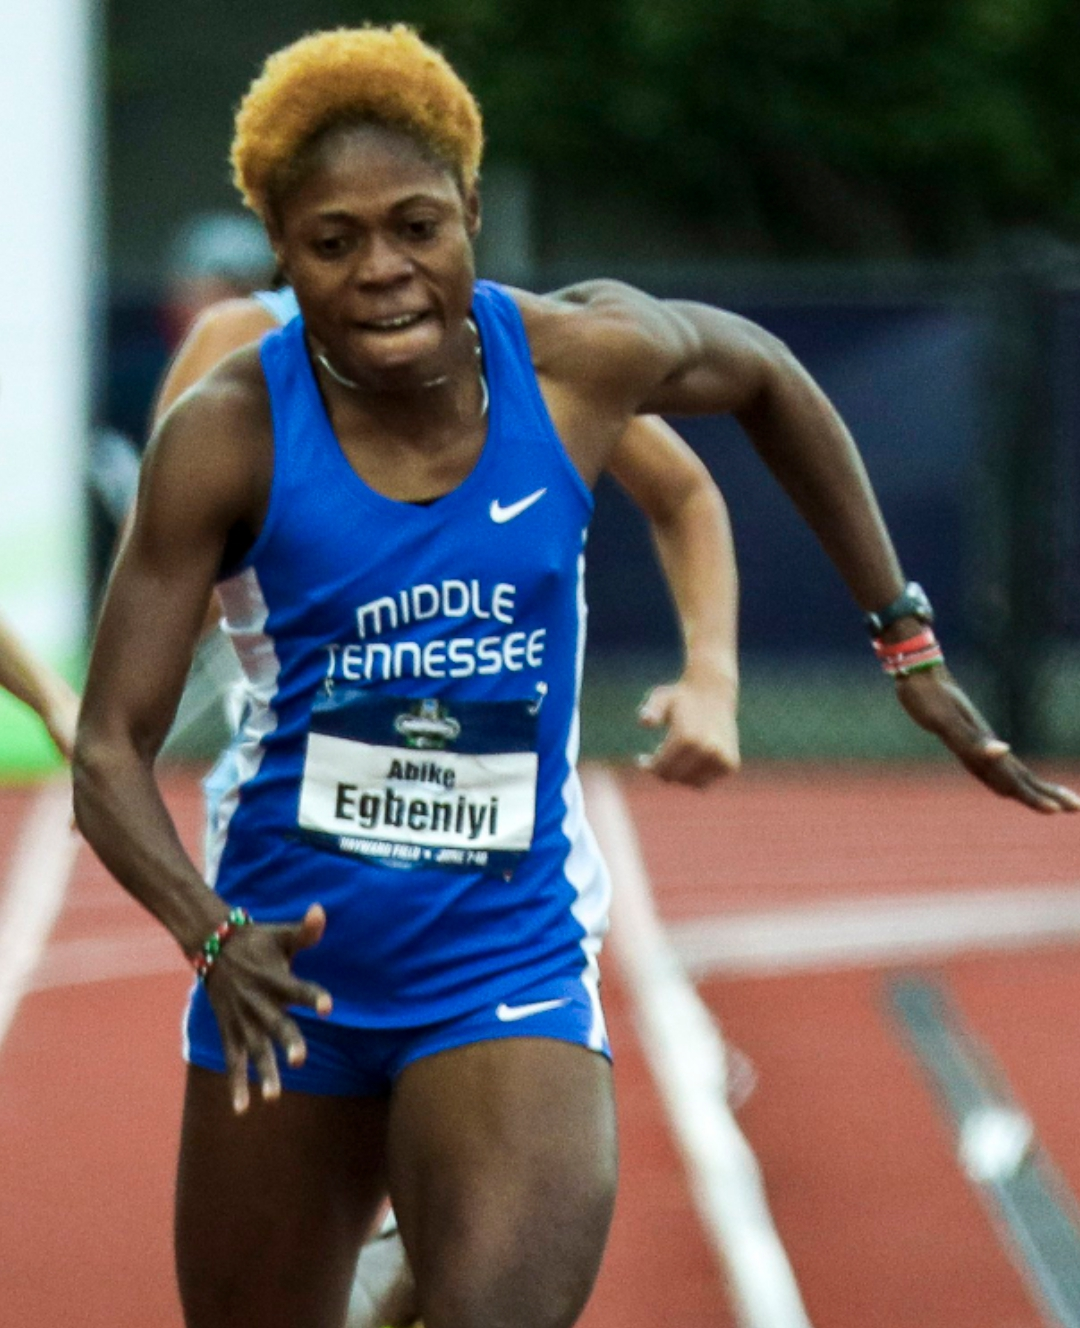 Osheku Athletics Academy Graduates Shine At Vanderbilt Invitational Indoor Meet